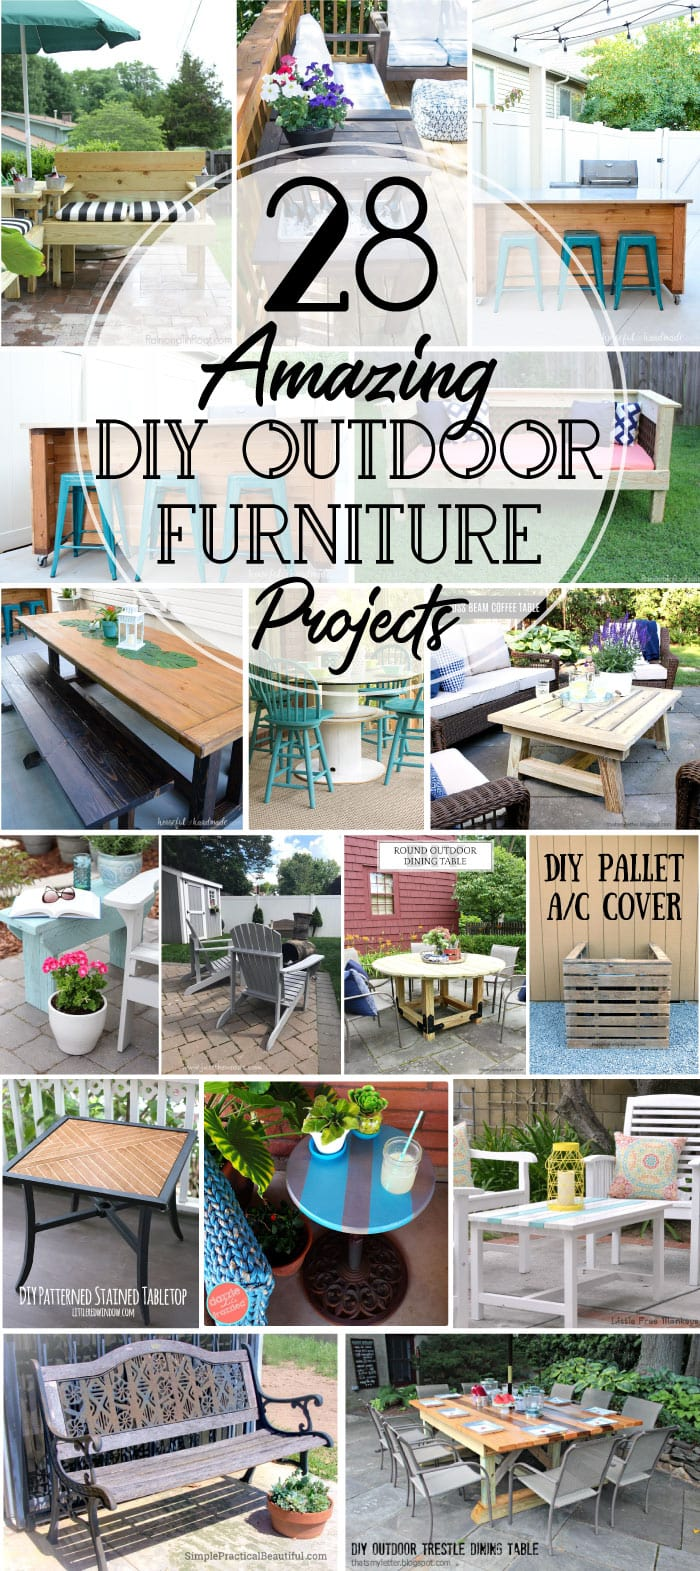 Get Your Yard Ready For Spring With These DIY Outdoor Furniture Projects.  Create The Perfect